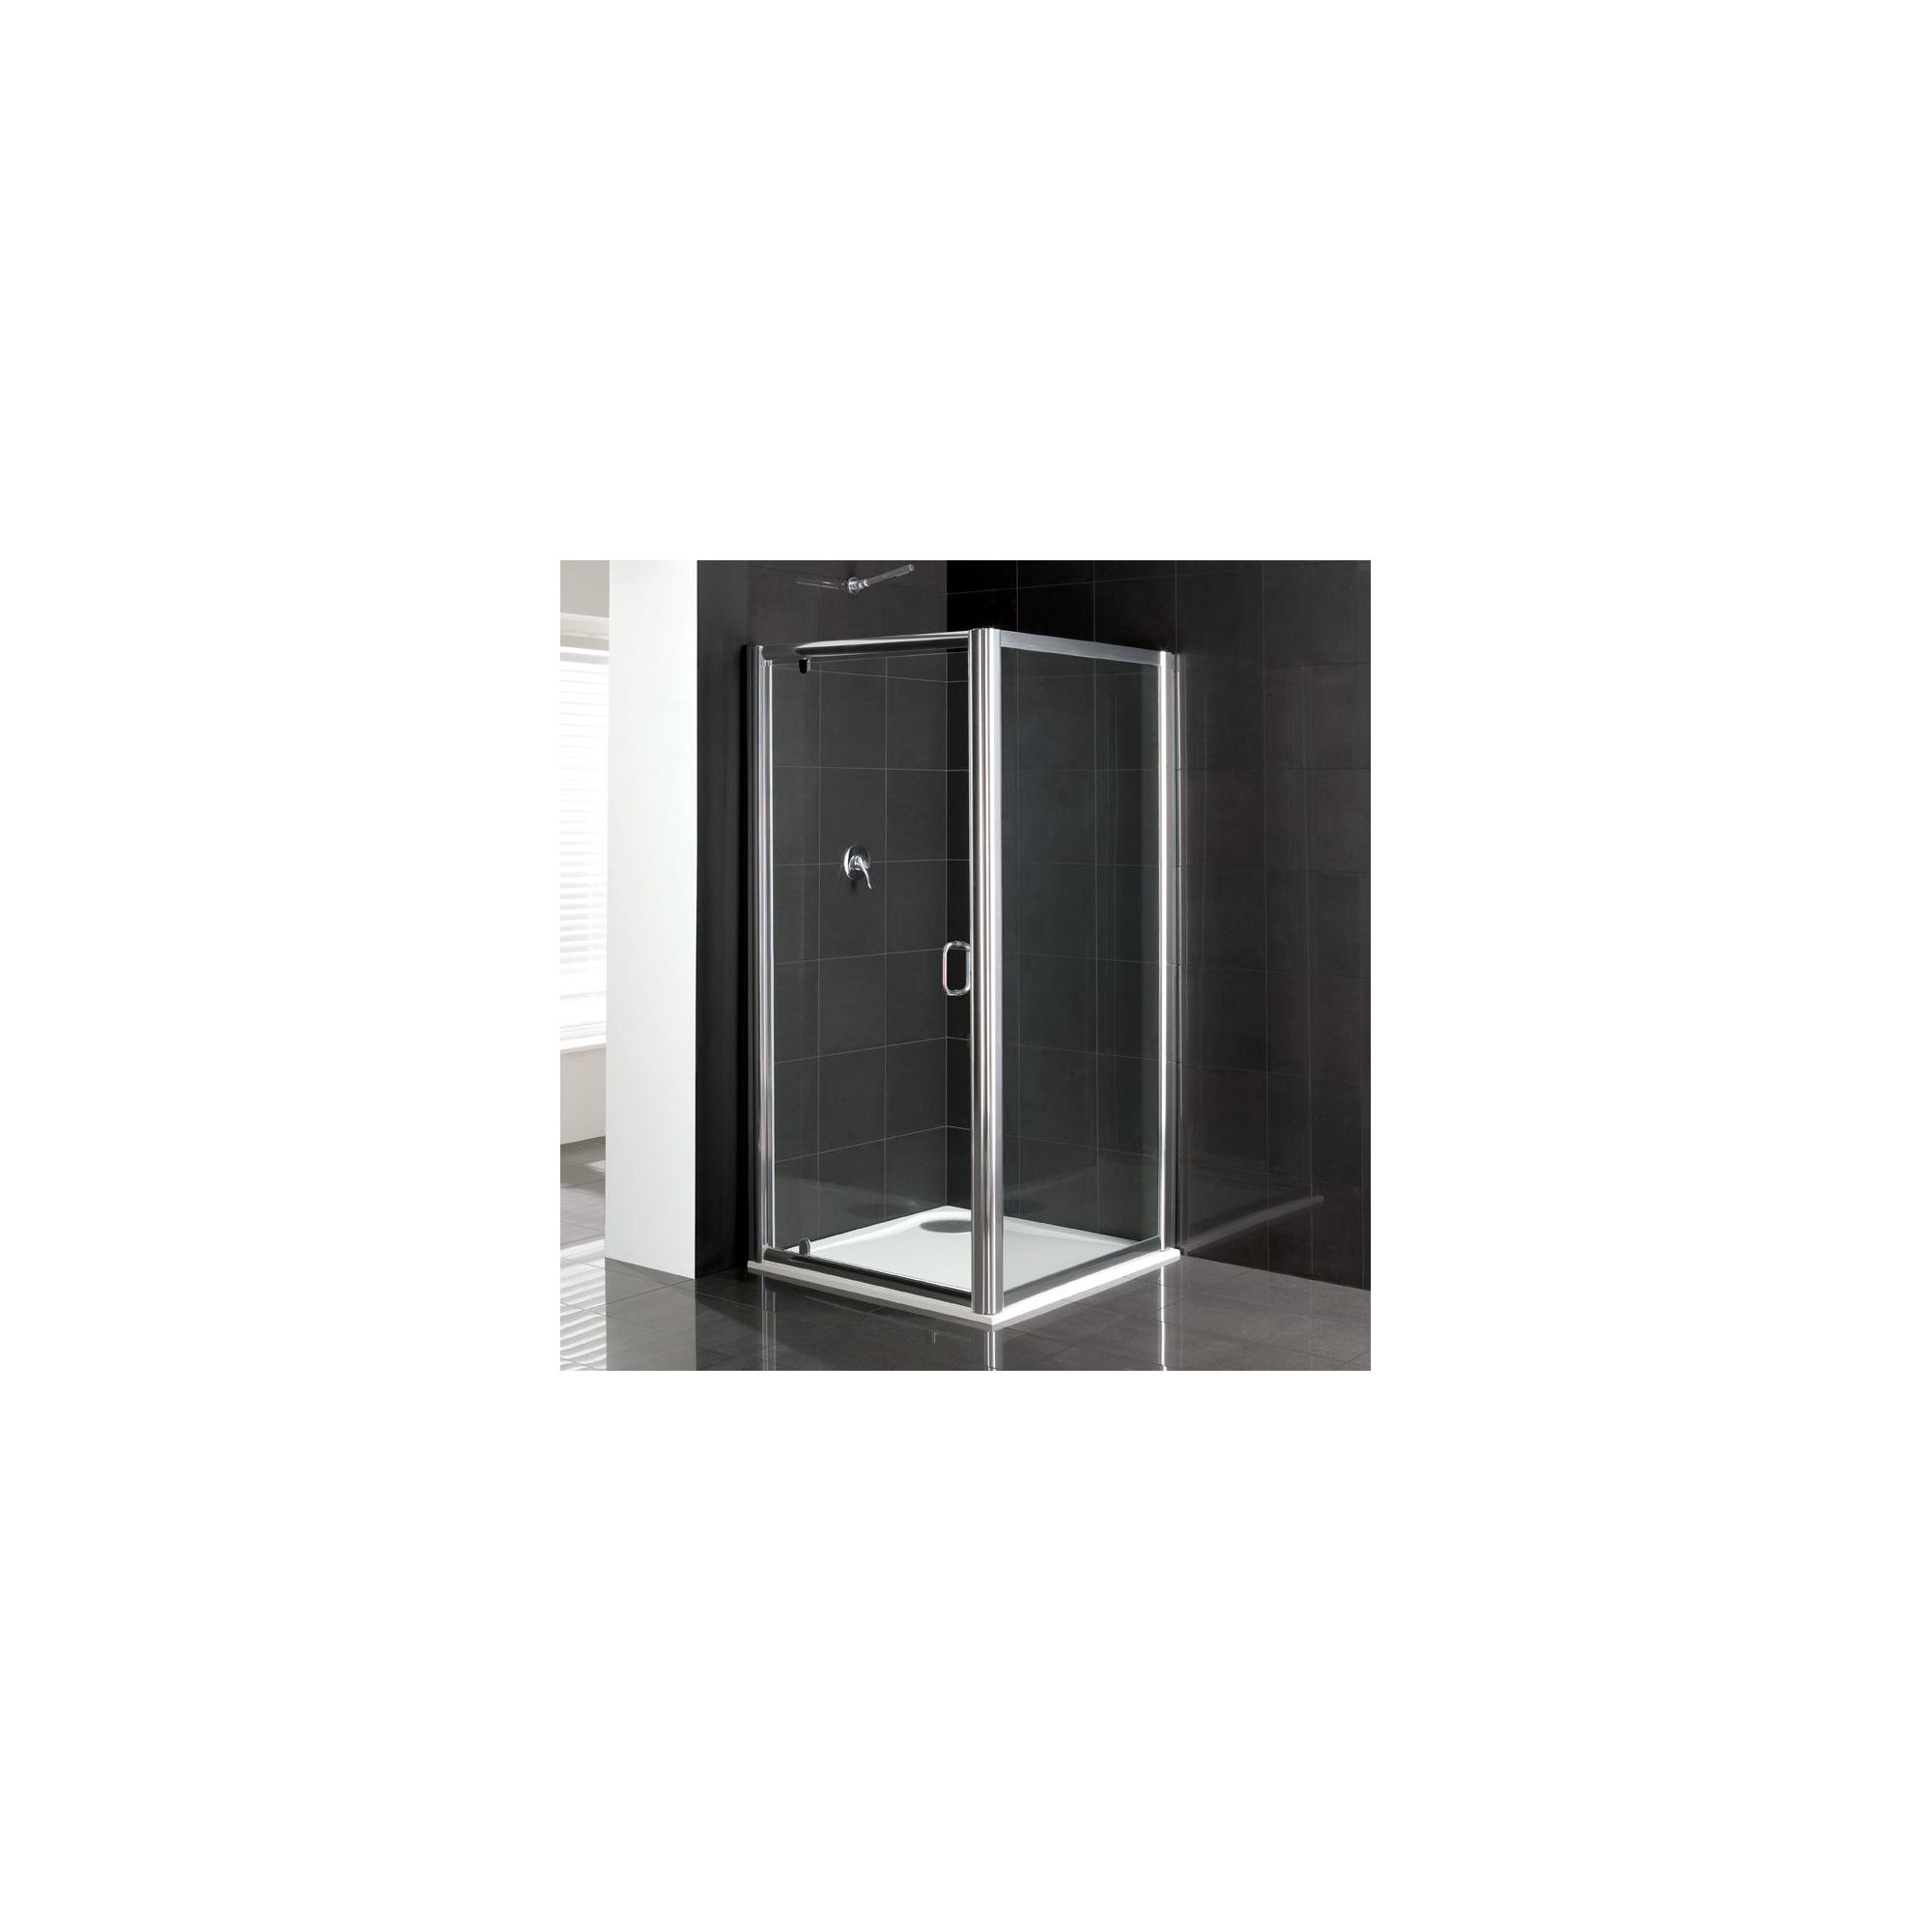 Duchy Elite Silver Pivot Door Shower Enclosure, 1000mm x 700mm, Standard Tray, 6mm Glass at Tesco Direct